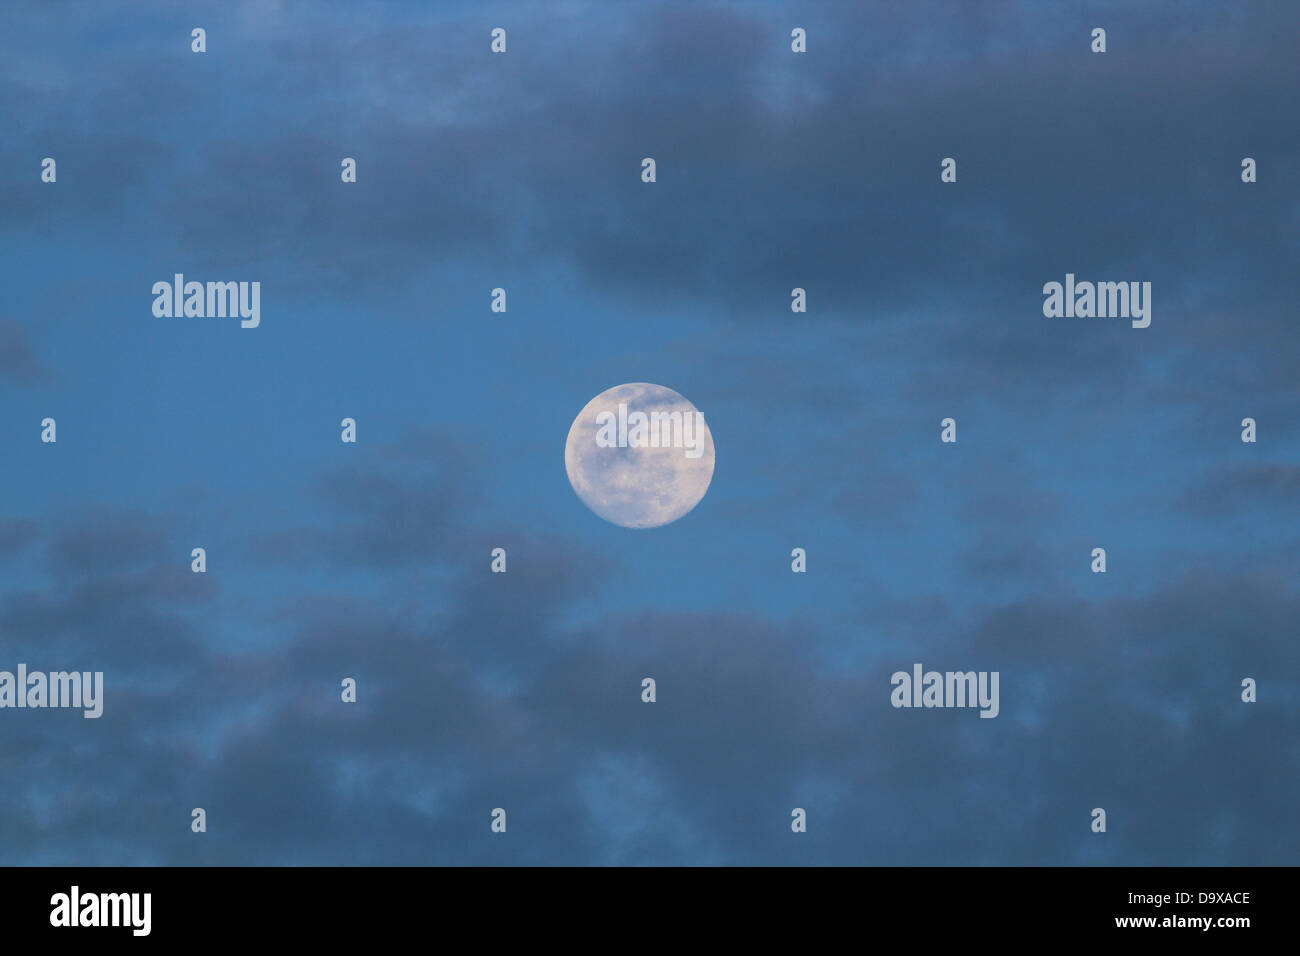 Full moon in a blue sky with some clouds Stock Photo